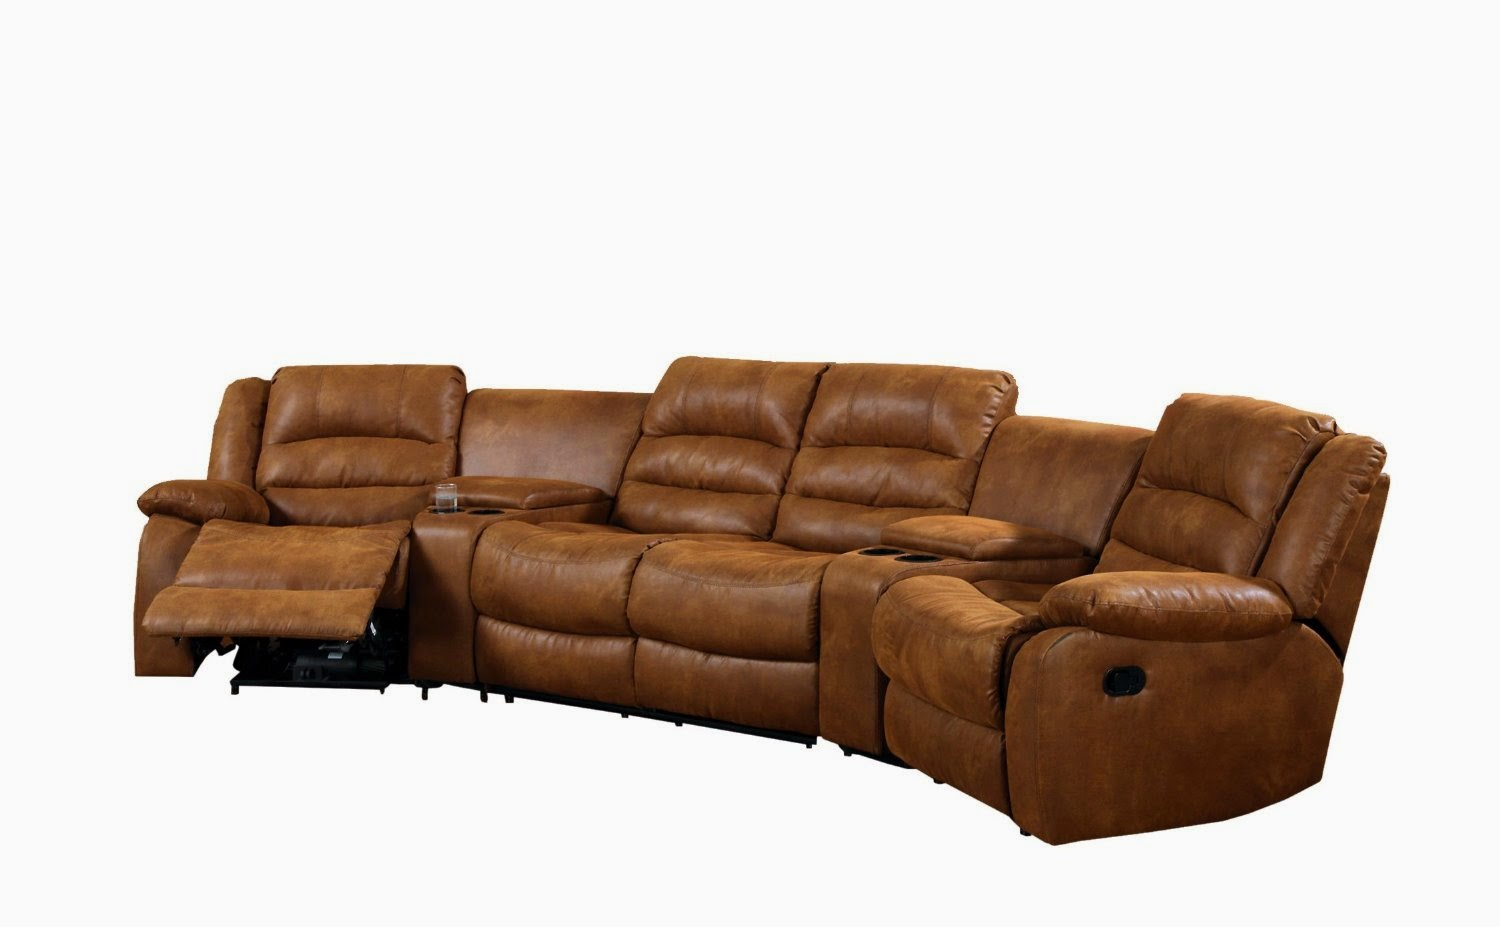 Cheap reclining sofas sale brown reclining sofa set for Couches and sofas for sale